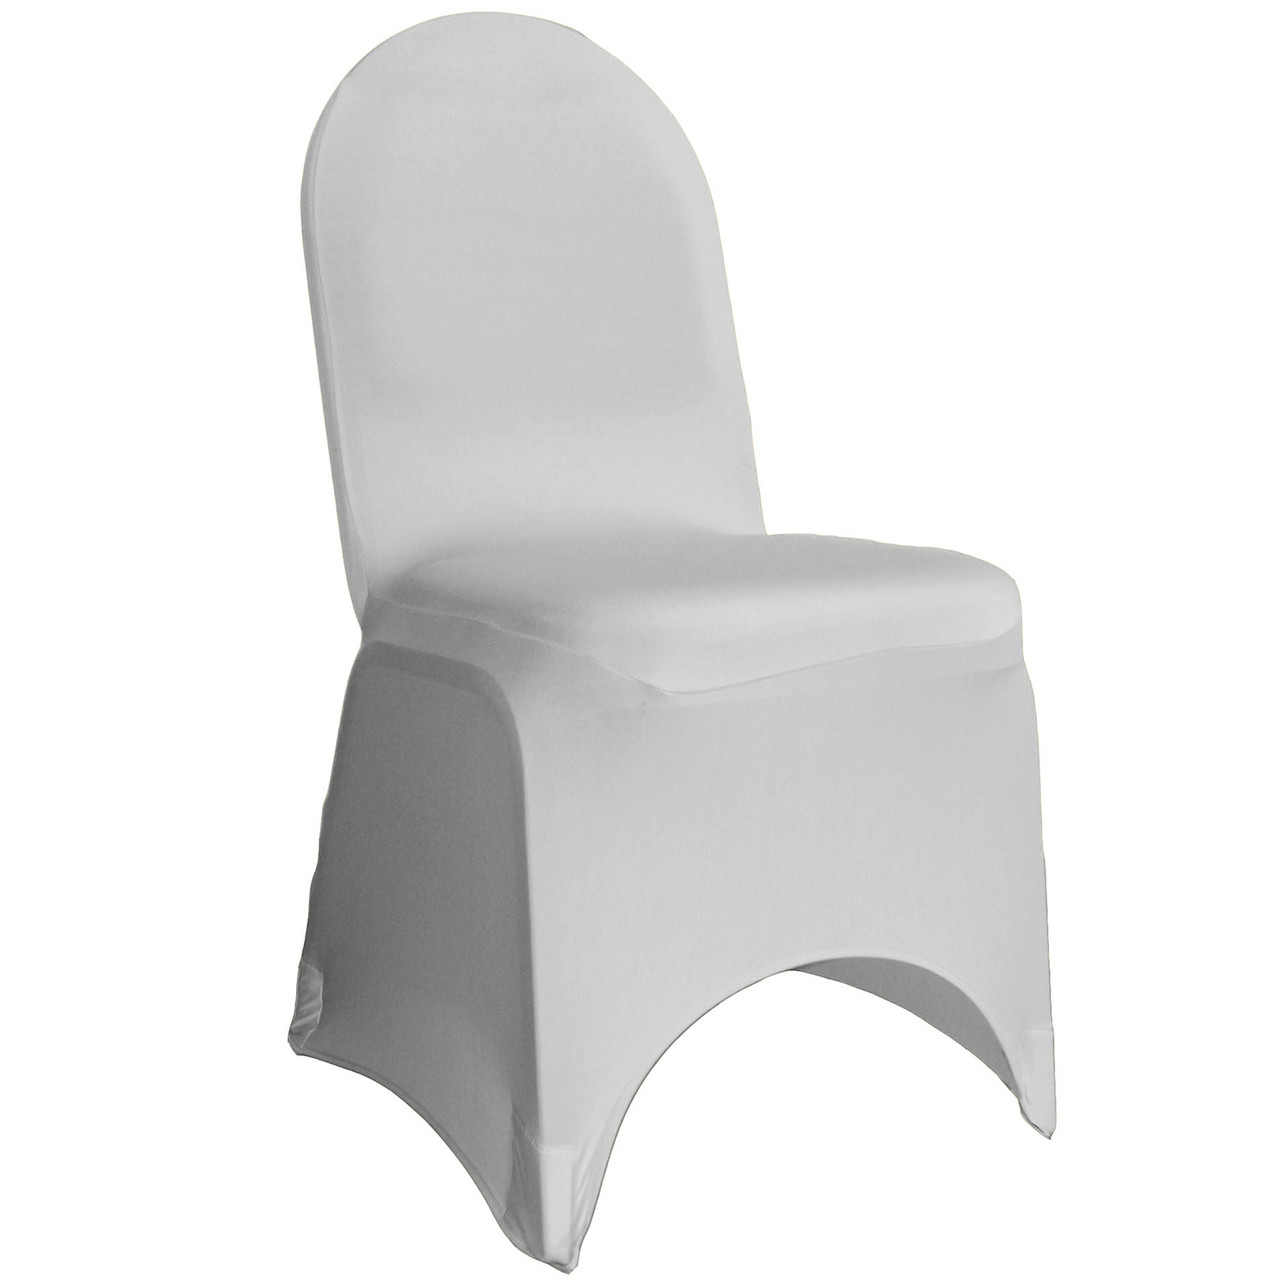 Enjoyable Stretch Spandex Banquet Chair Cover Silver Inzonedesignstudio Interior Chair Design Inzonedesignstudiocom